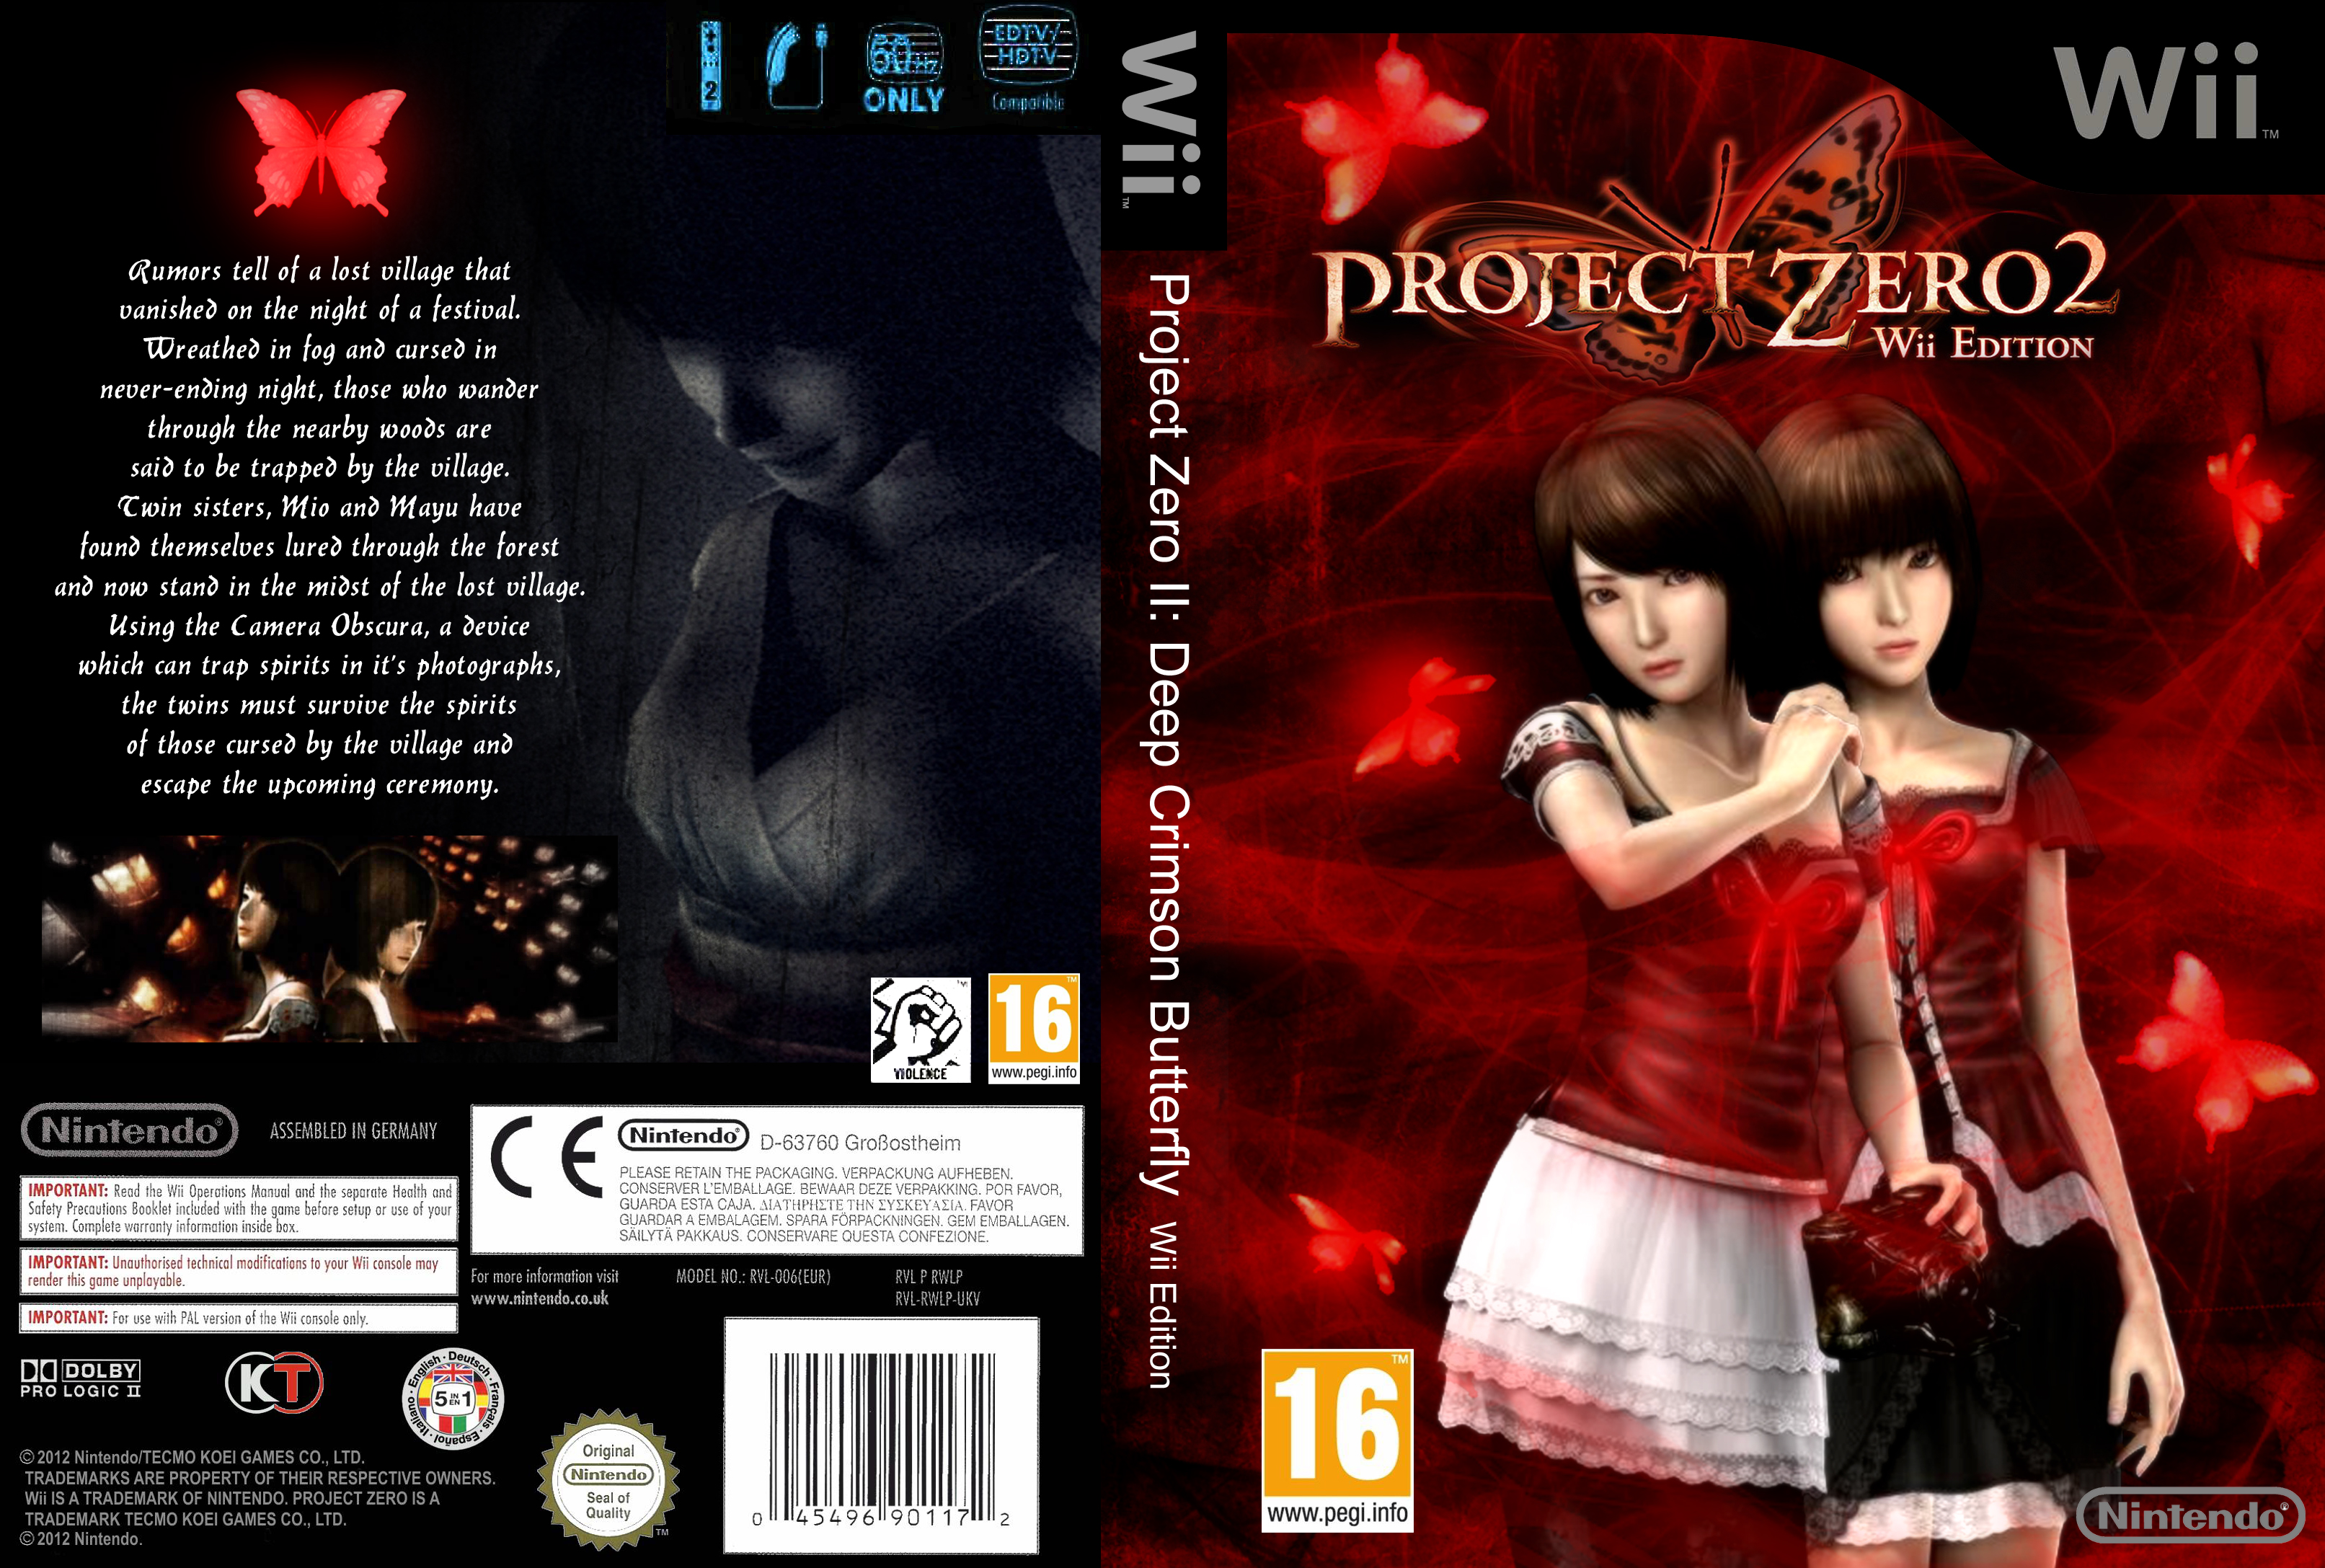 Project Zero 2: Deep Crimson Butterfly cover by HavenRelis on DeviantArt